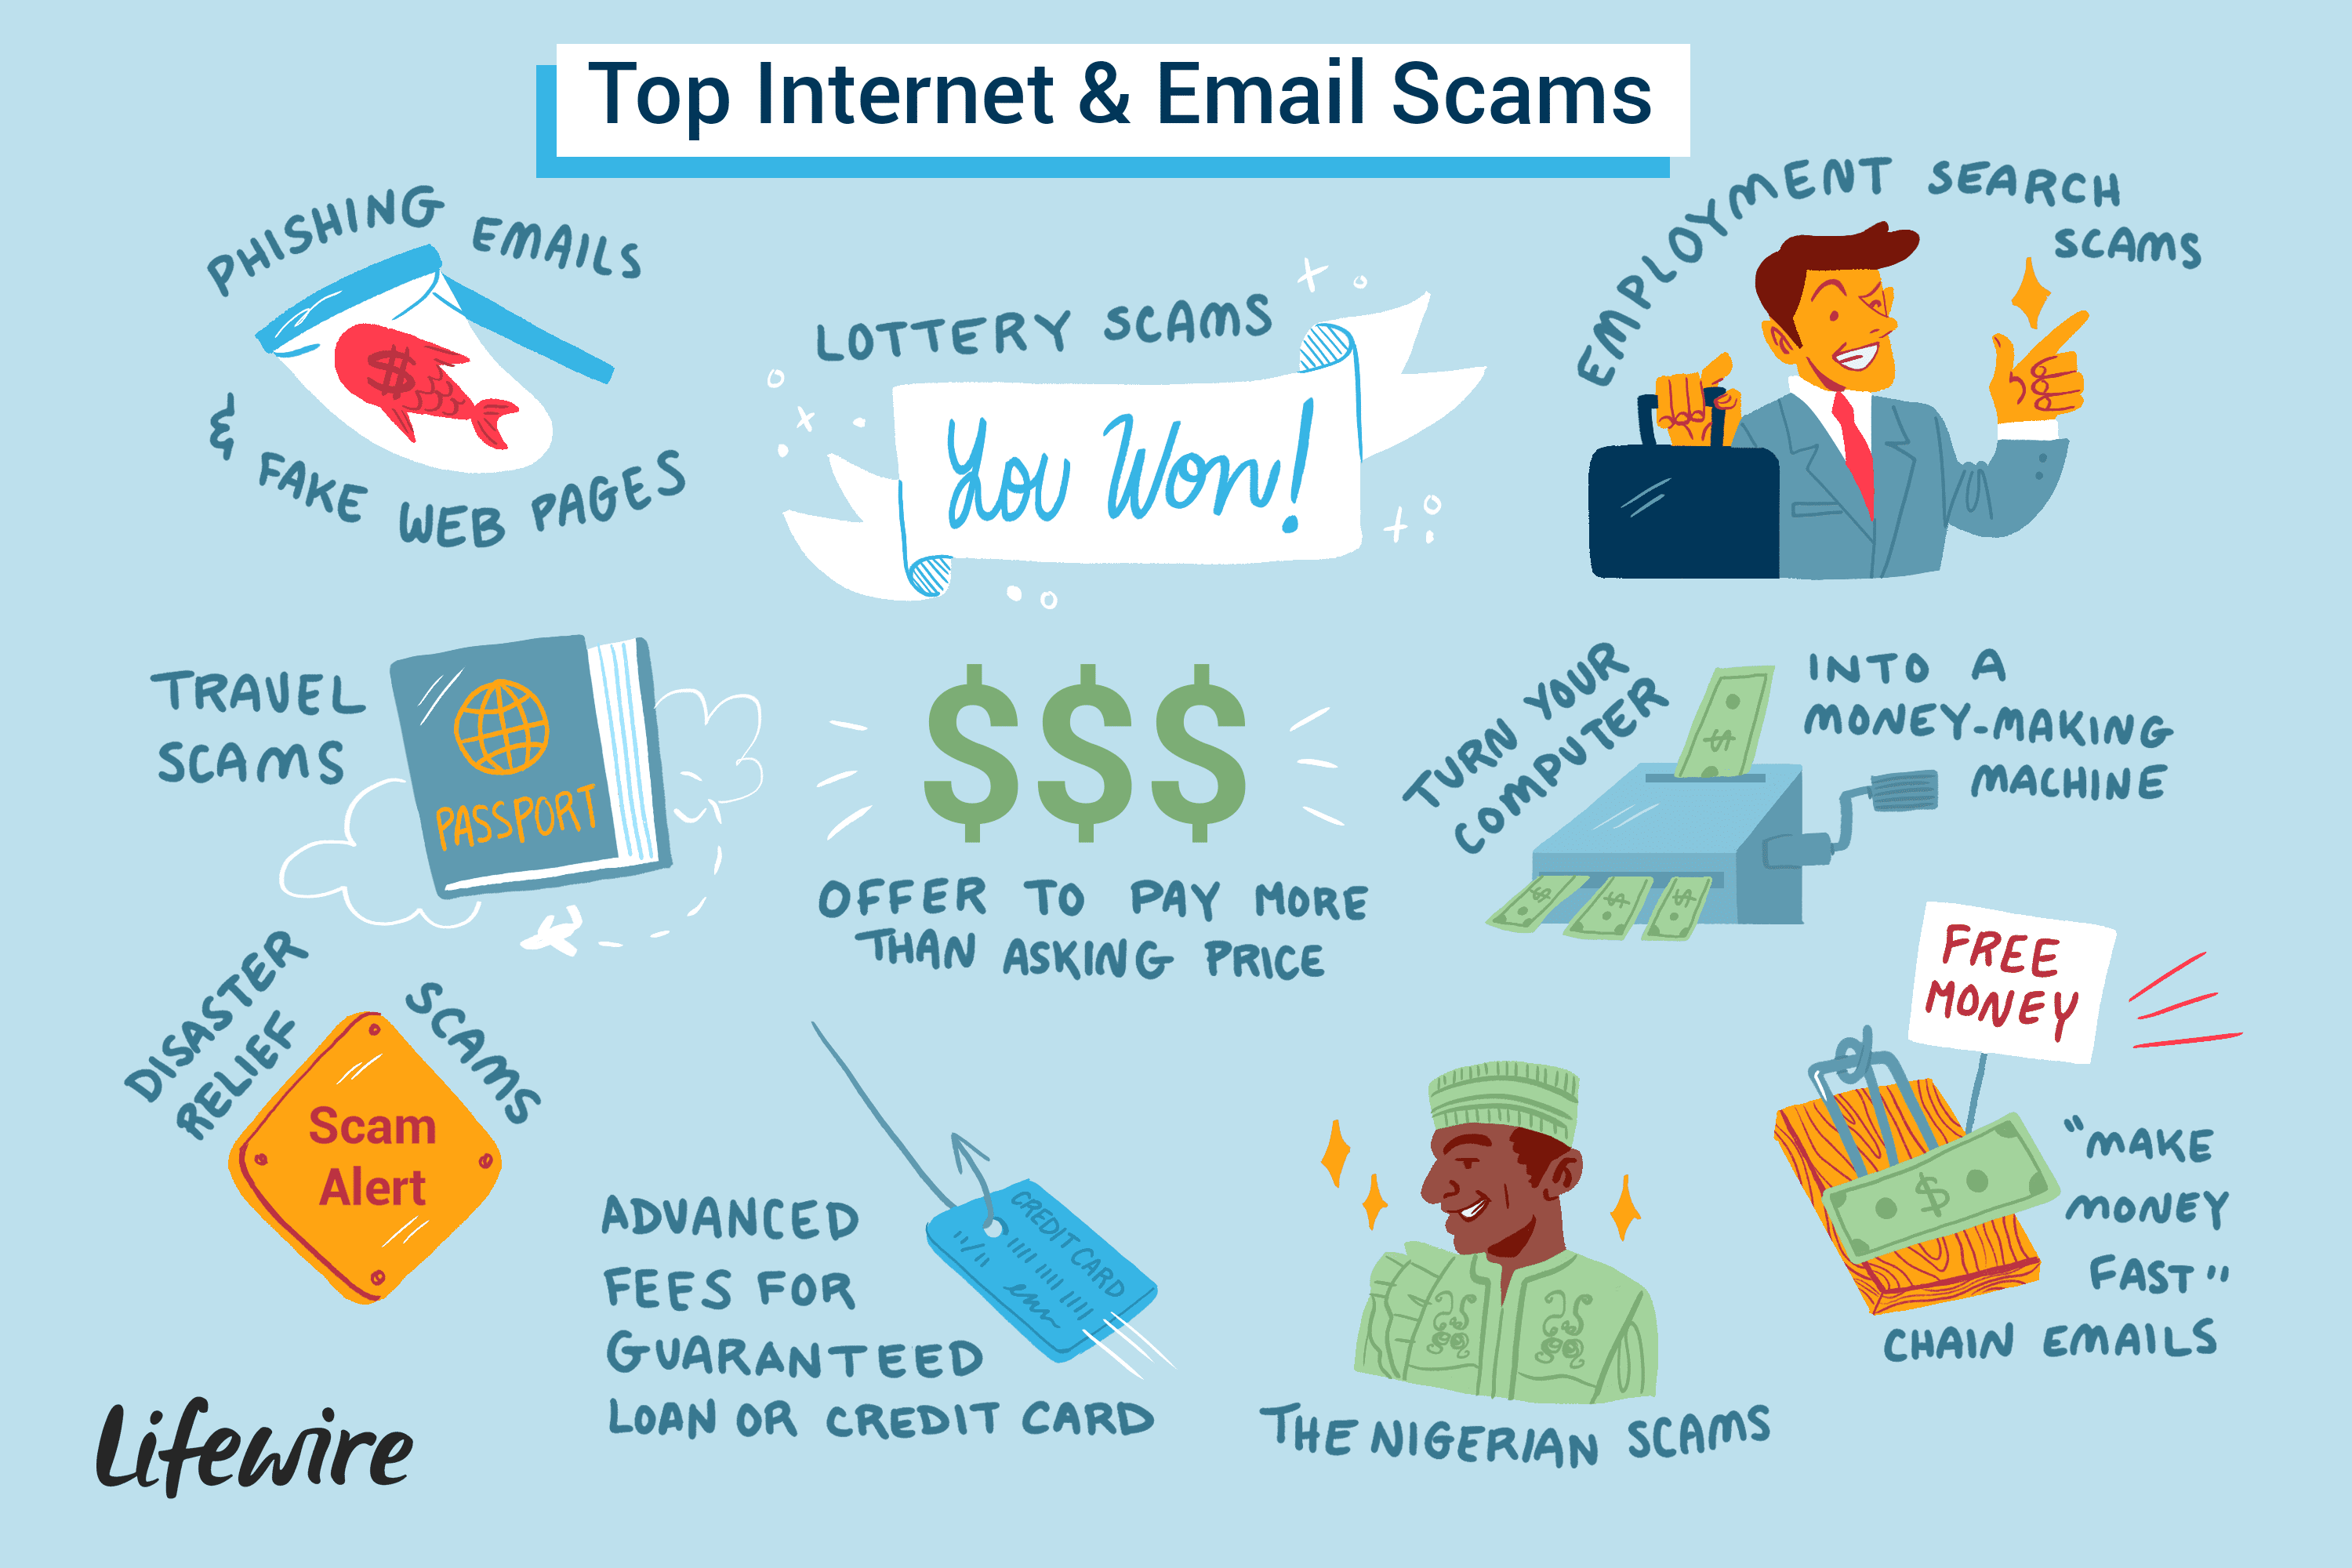 The Top 10 Internet and Email Scams